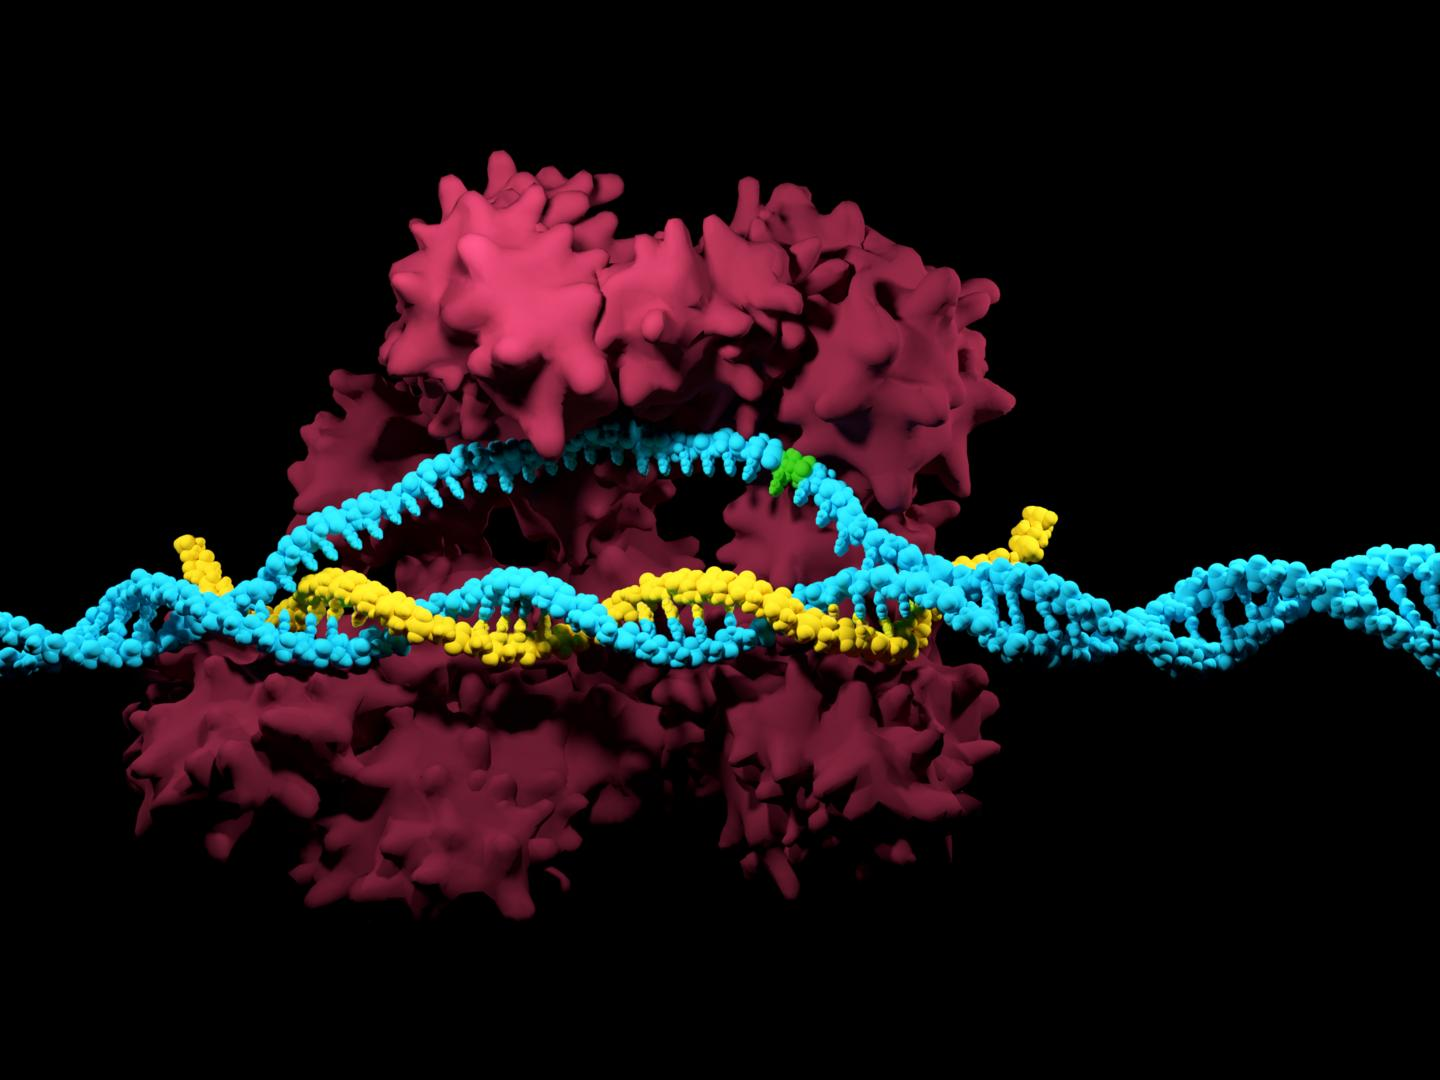 A single nucleotide variation is indicated here in green within the DNA code (in blue) and next to the CRISPR/Cas9 system. / Credit: iStock/Meletios Verras